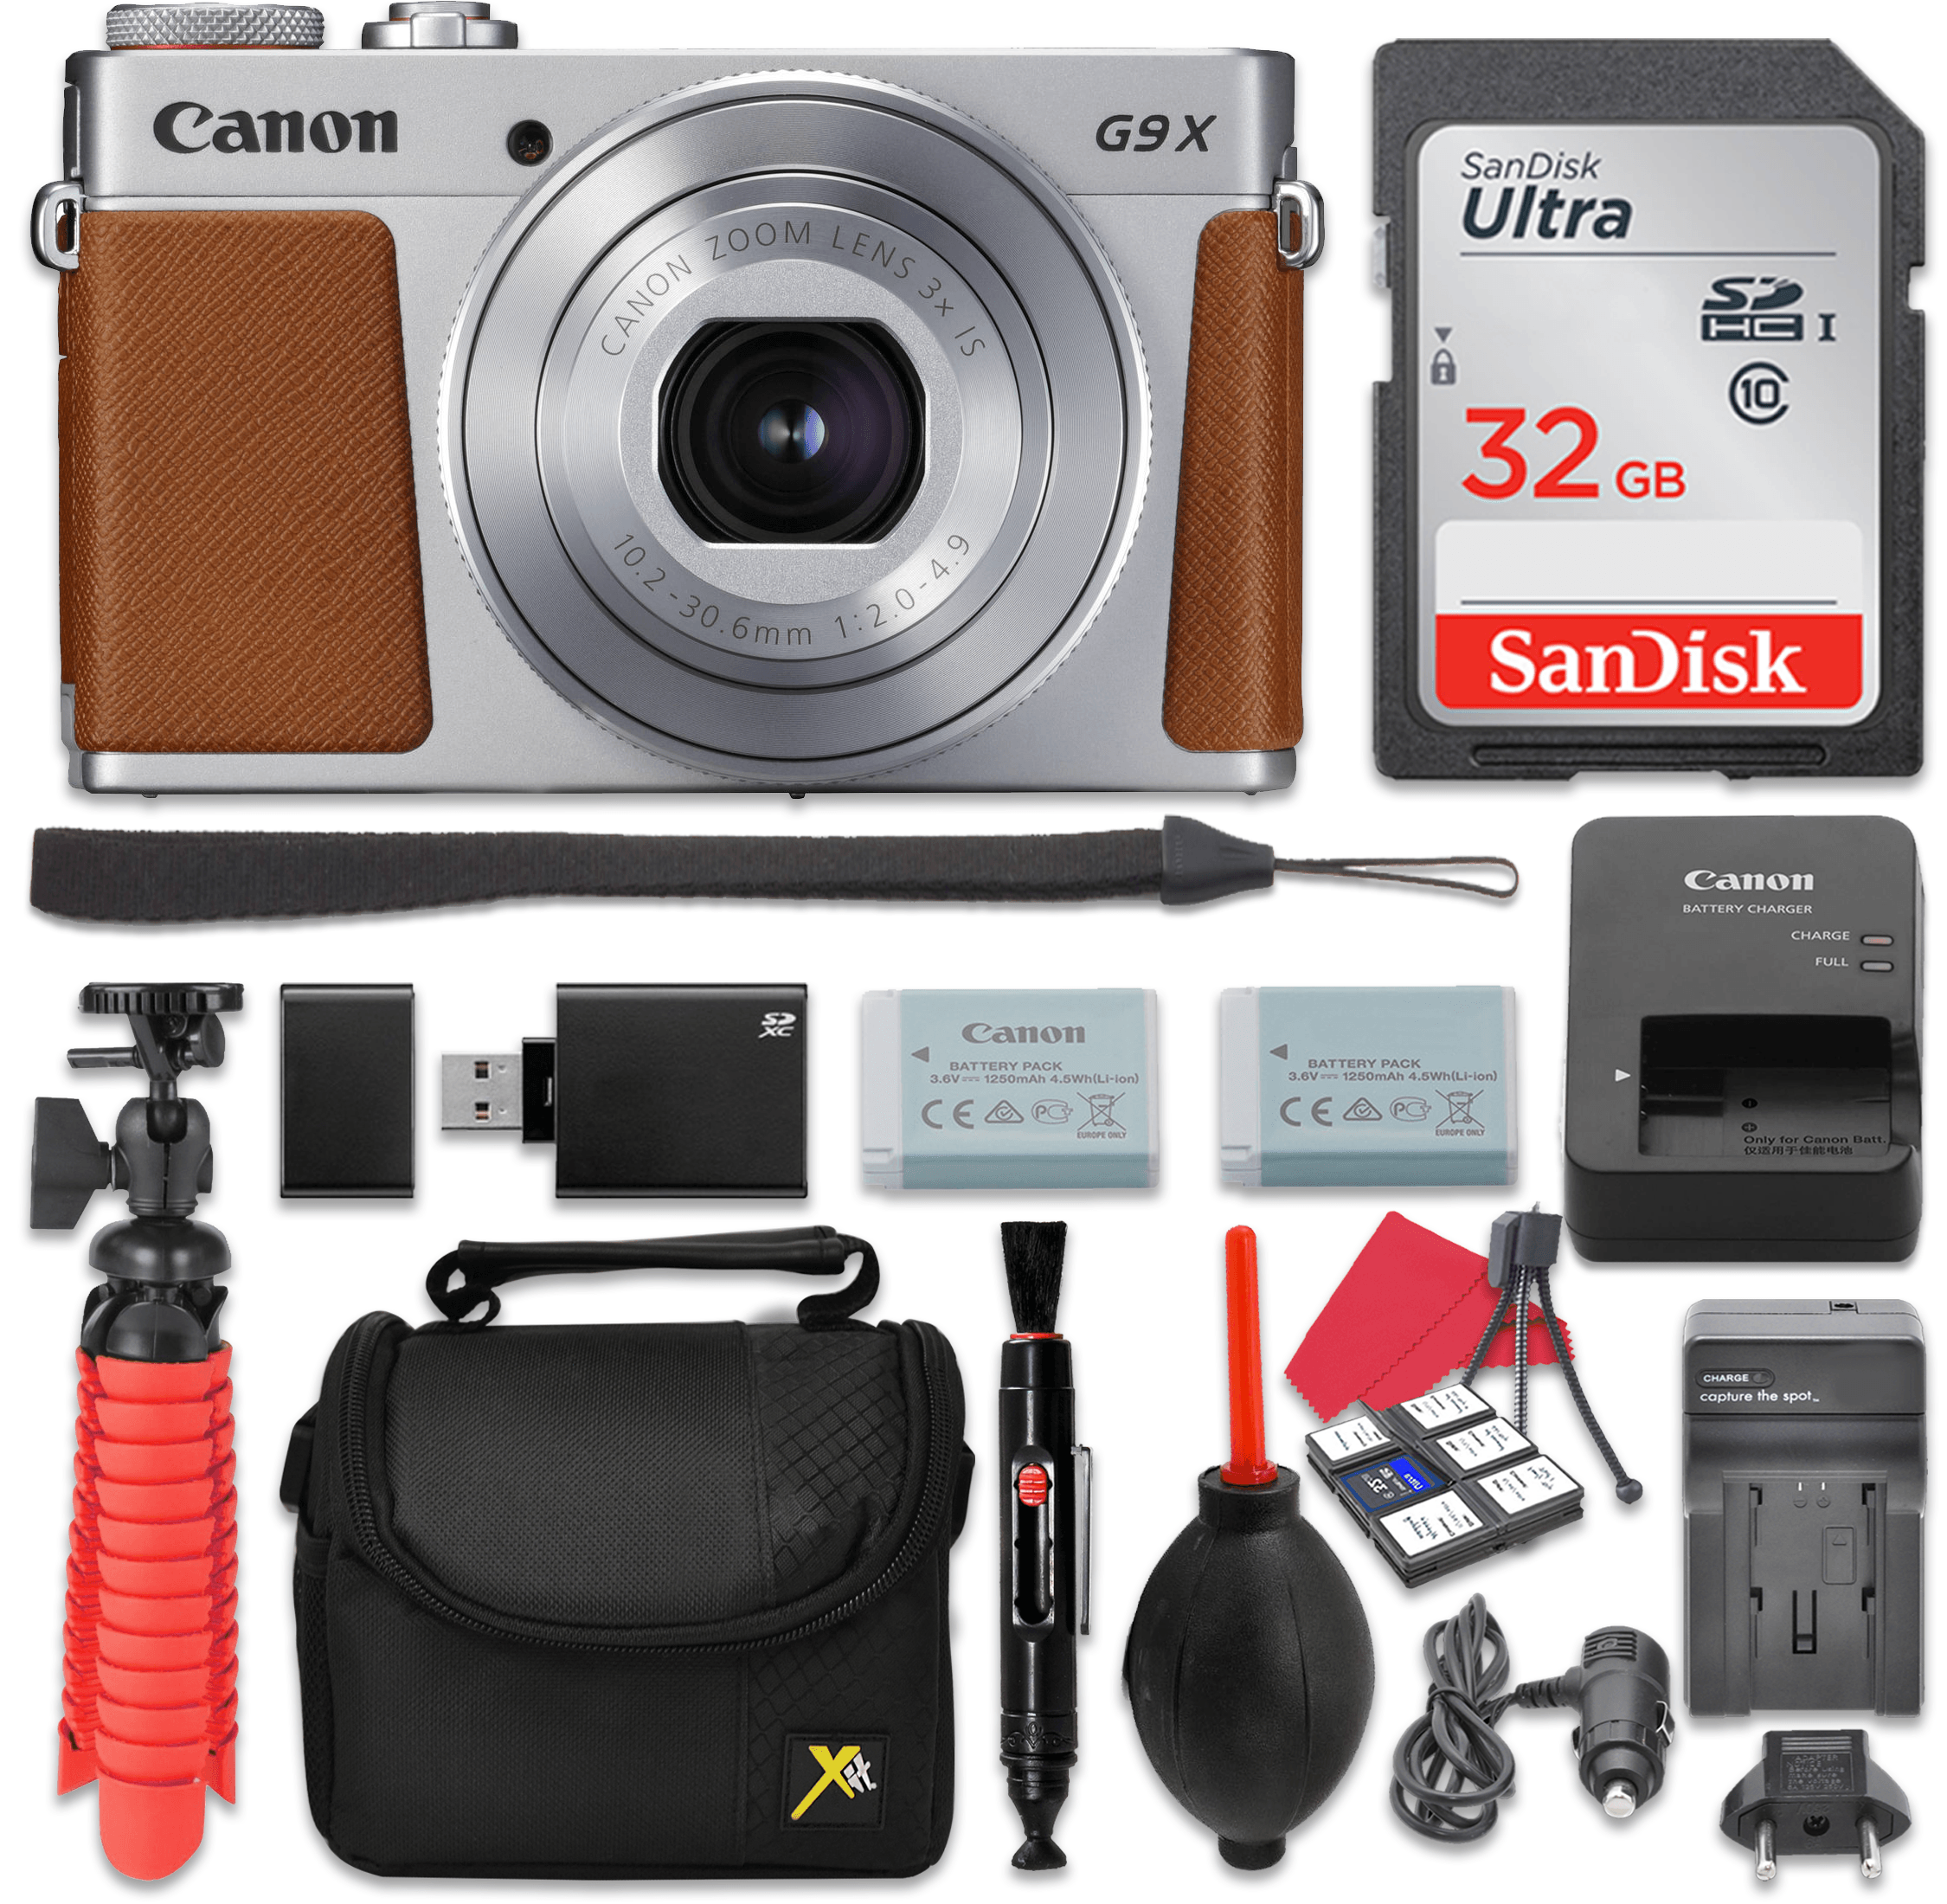 Canon PowerShot G9 X Mark II Digital Camera (Silver) 3x Optical Zoom + 32GB SD + Spare Battery + Complete Accessory Bundle